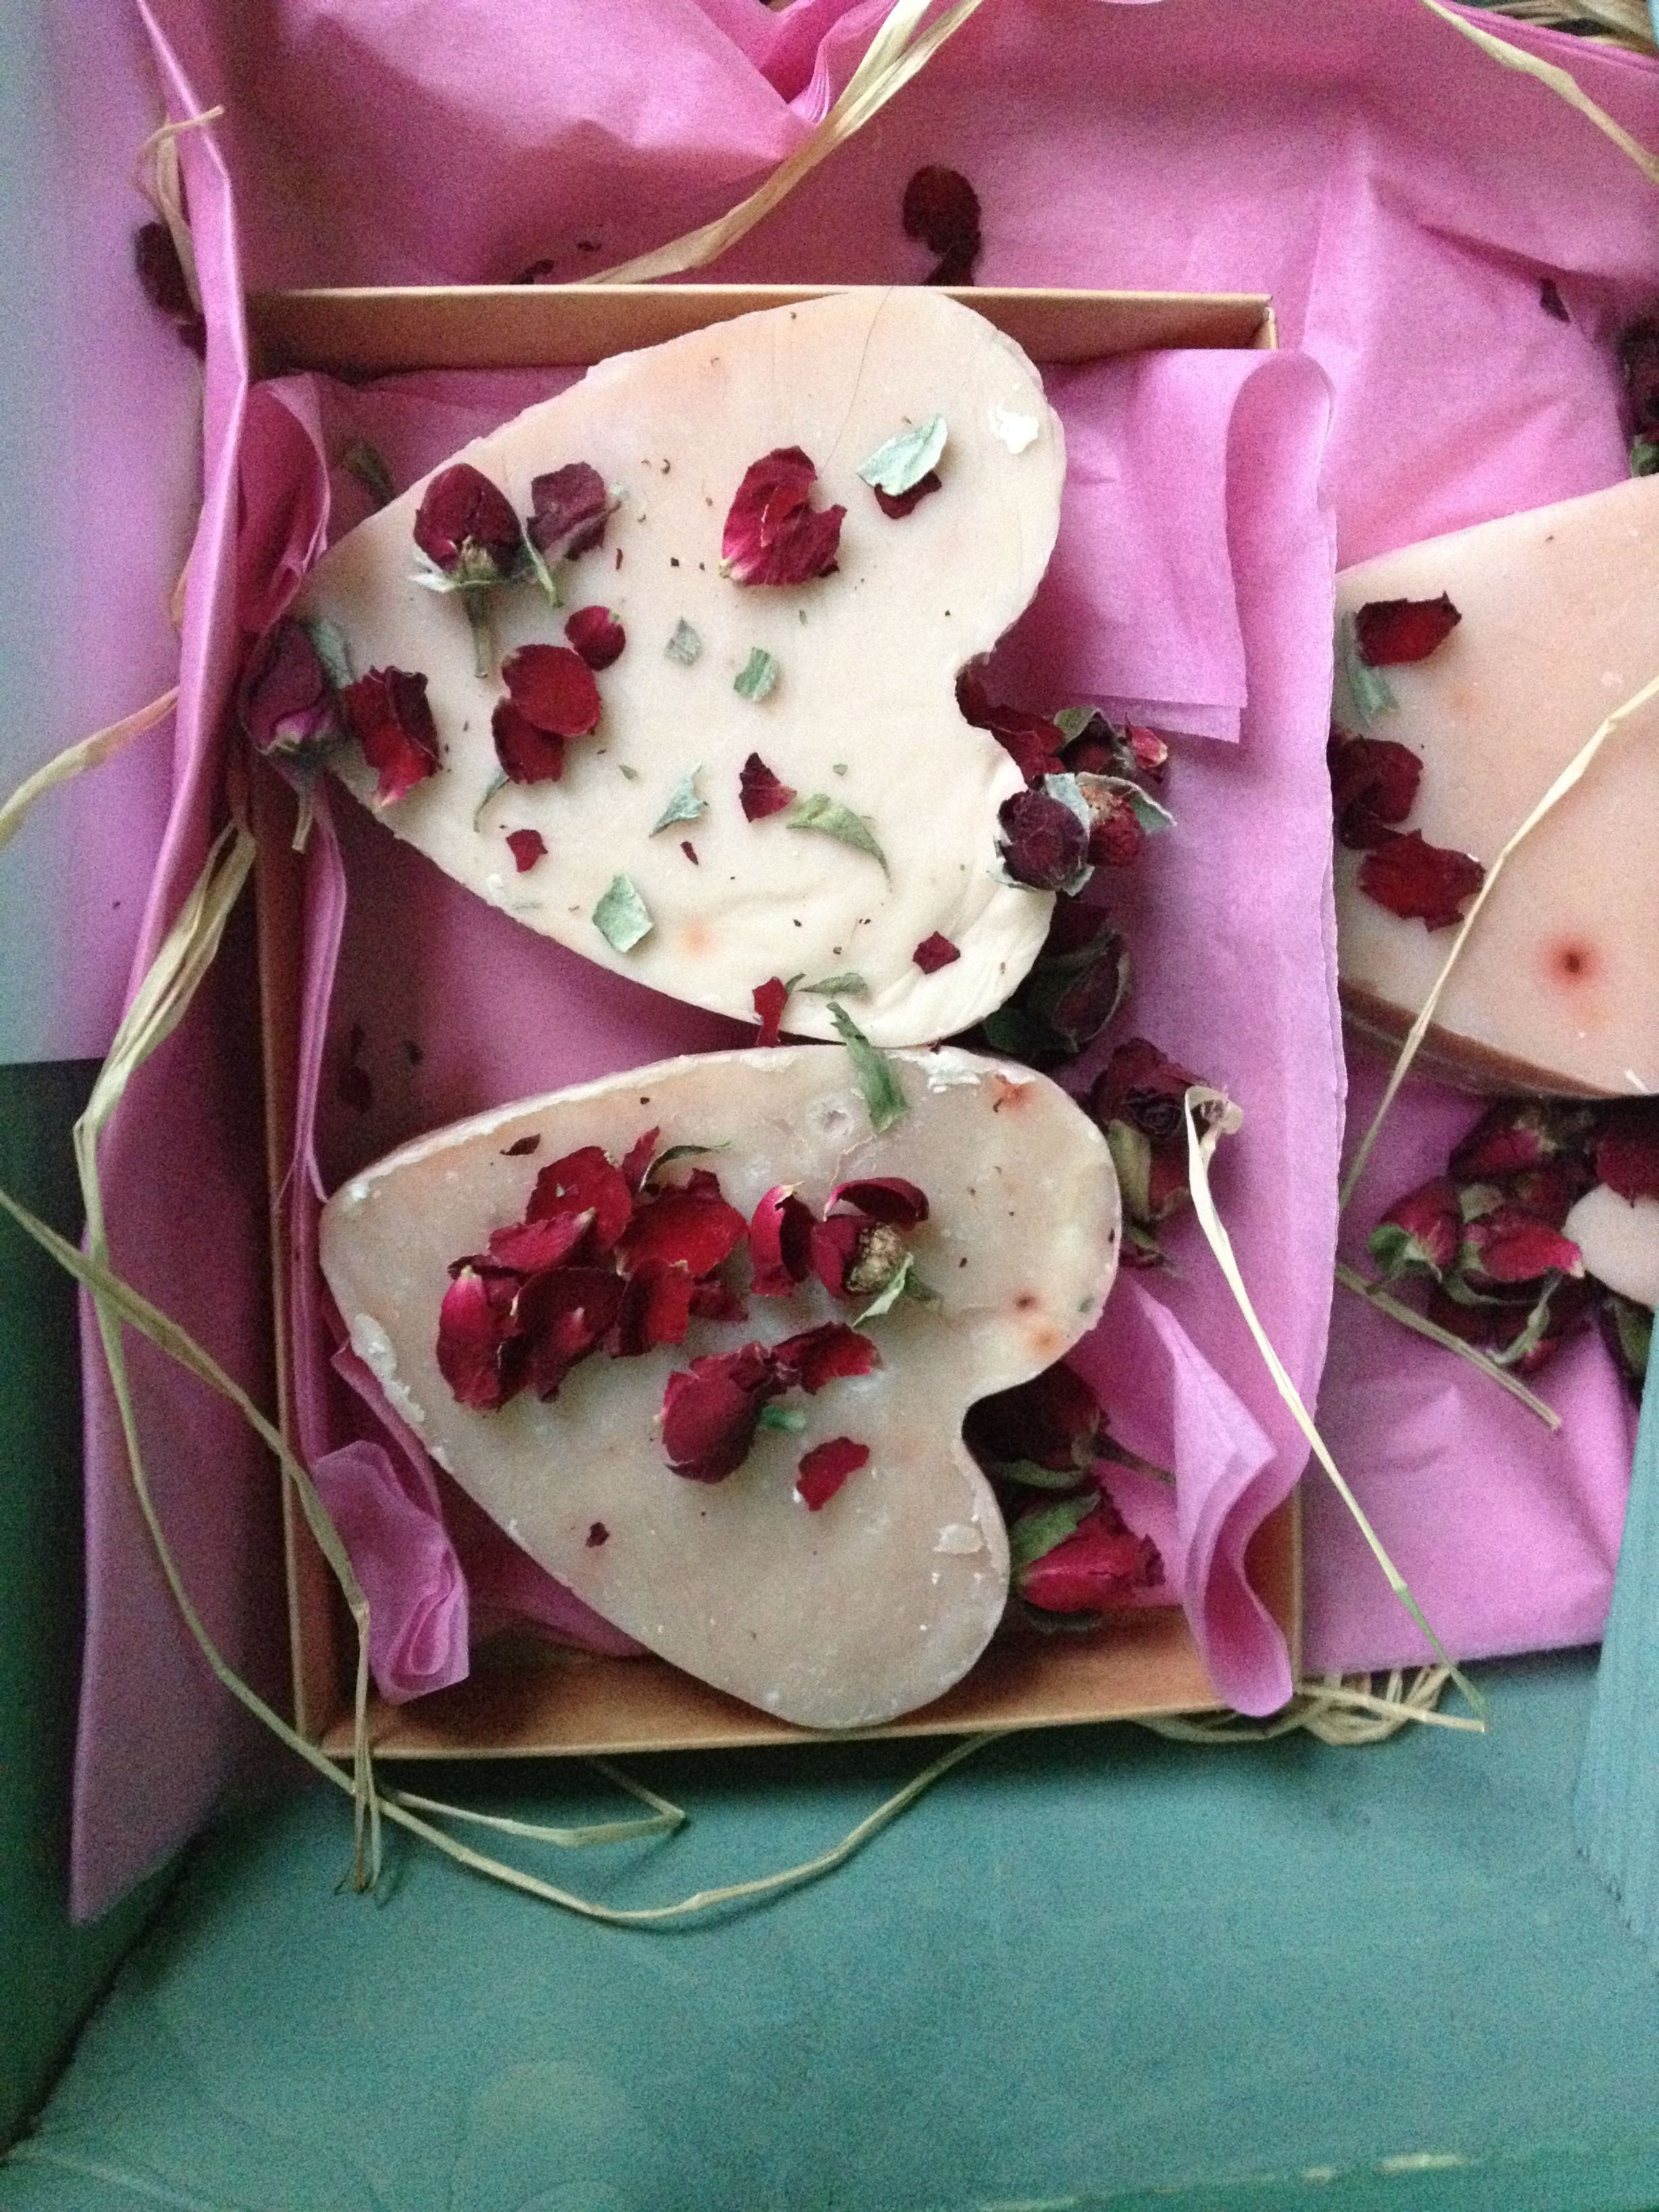 Rose and patchouli soap made for Valentine's Day. It was scented with rose and patchouli and coloured with rose madder - gorgeous!